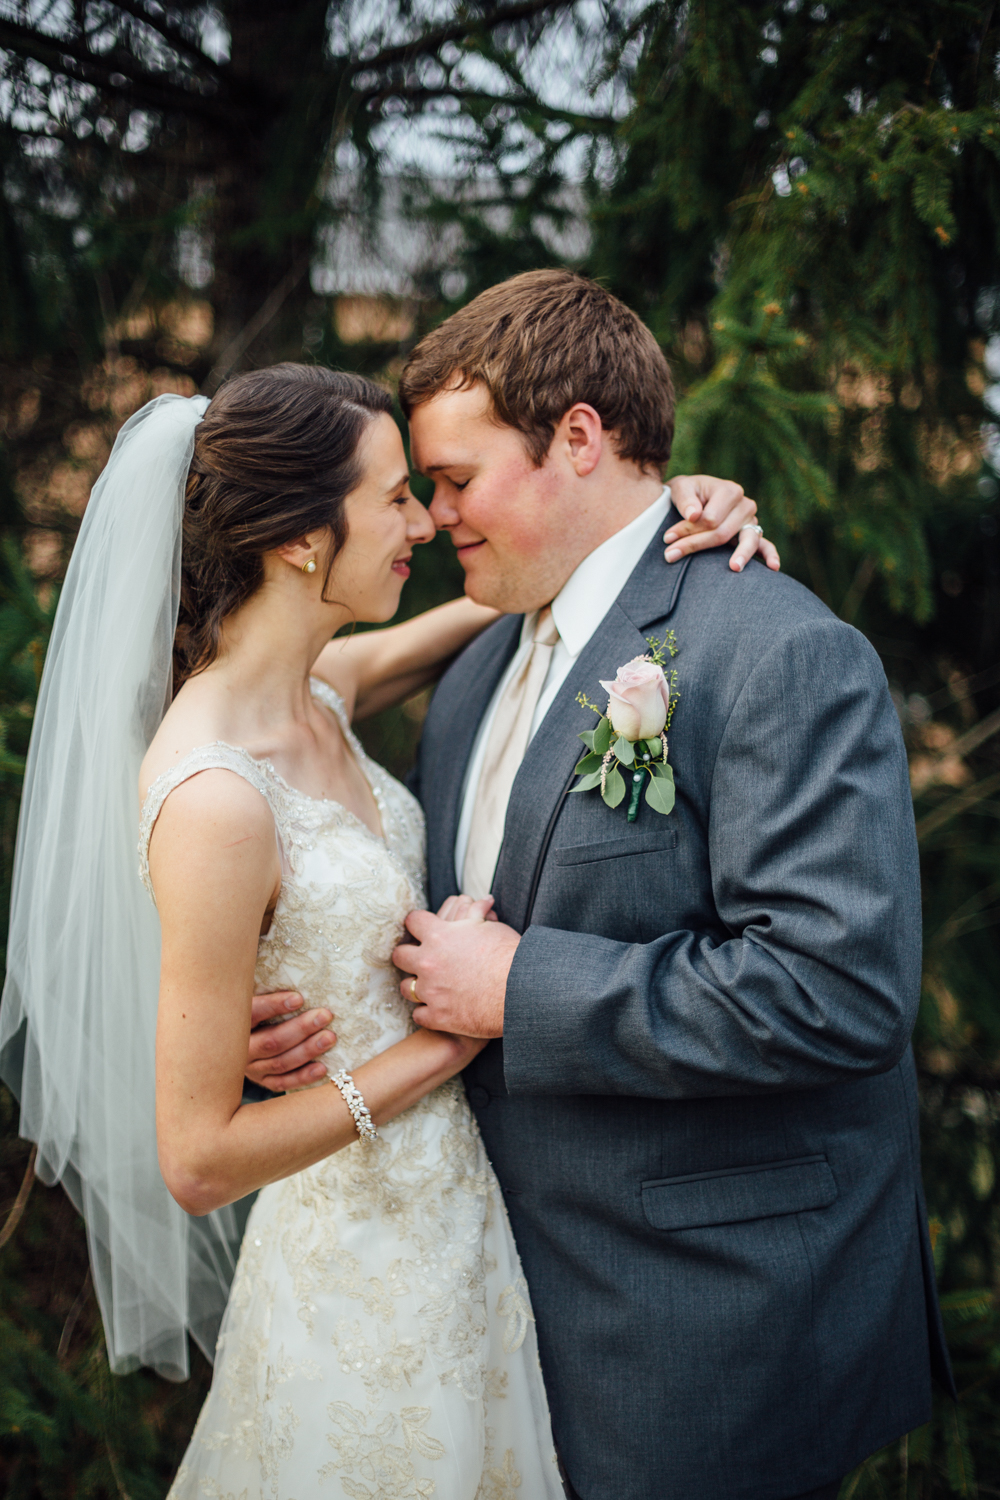 Fun, Intimate Spring Wedding by Corrie Mick Photography-65.jpg